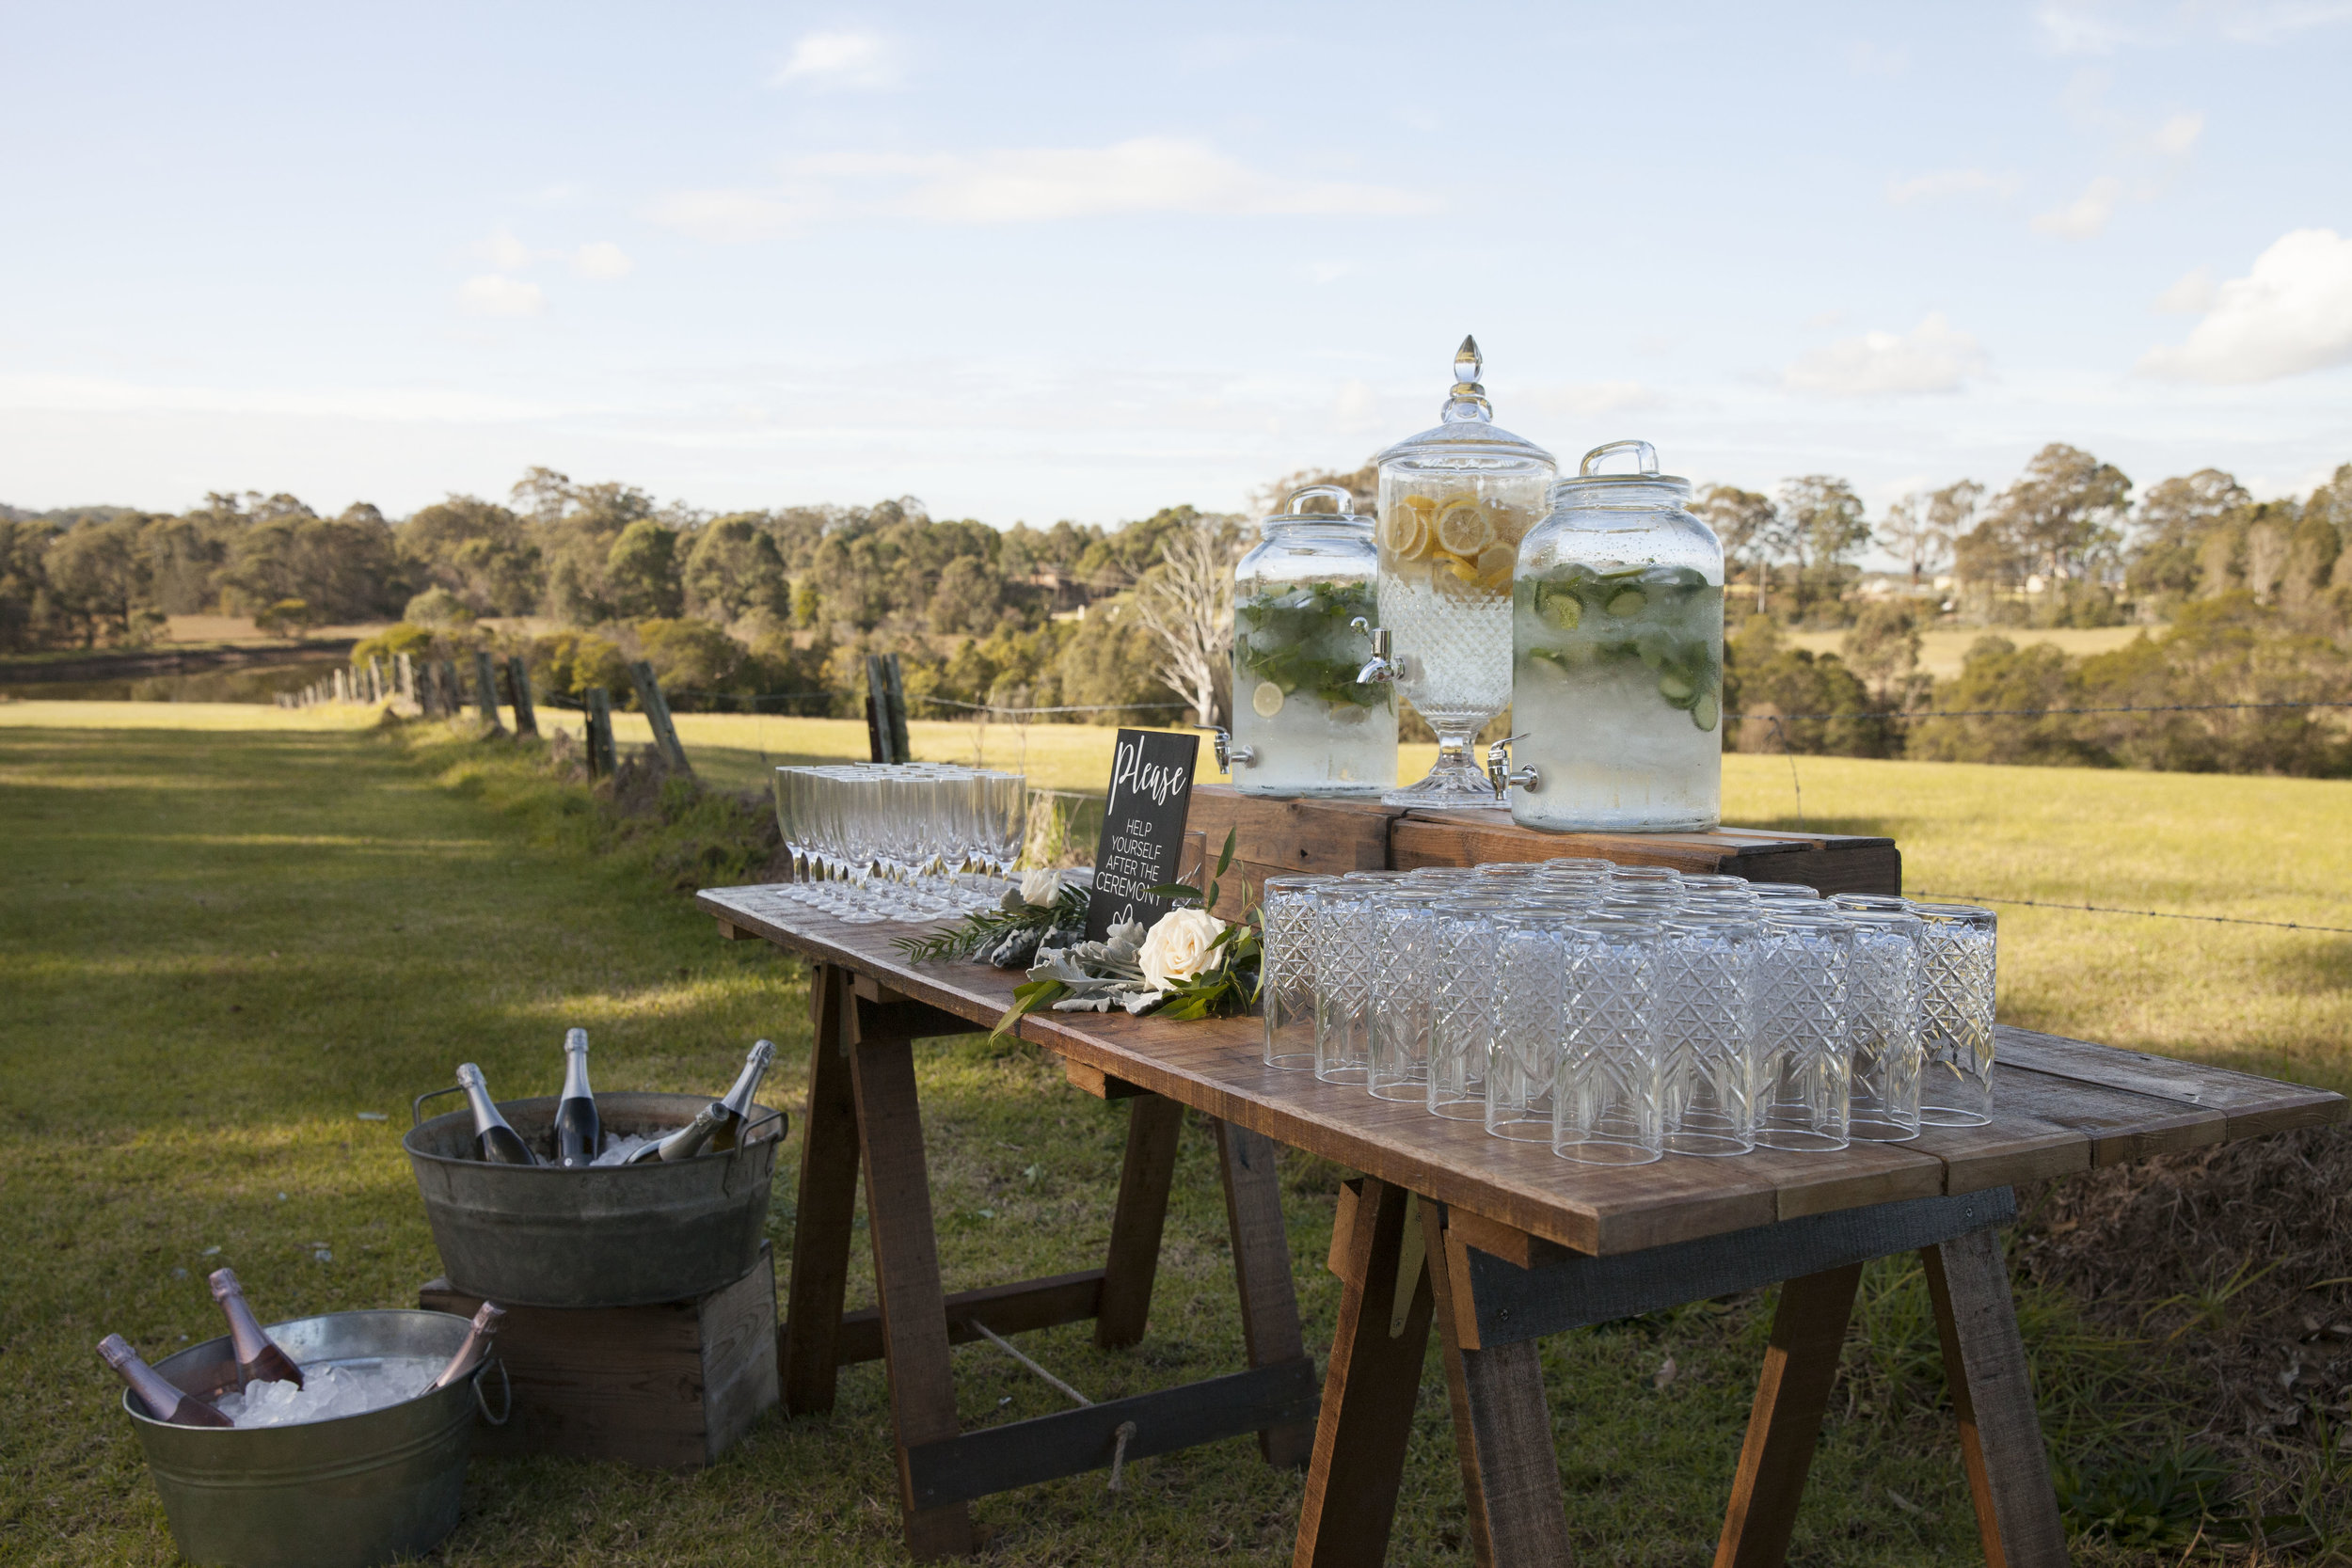 DRINK STATIONS -